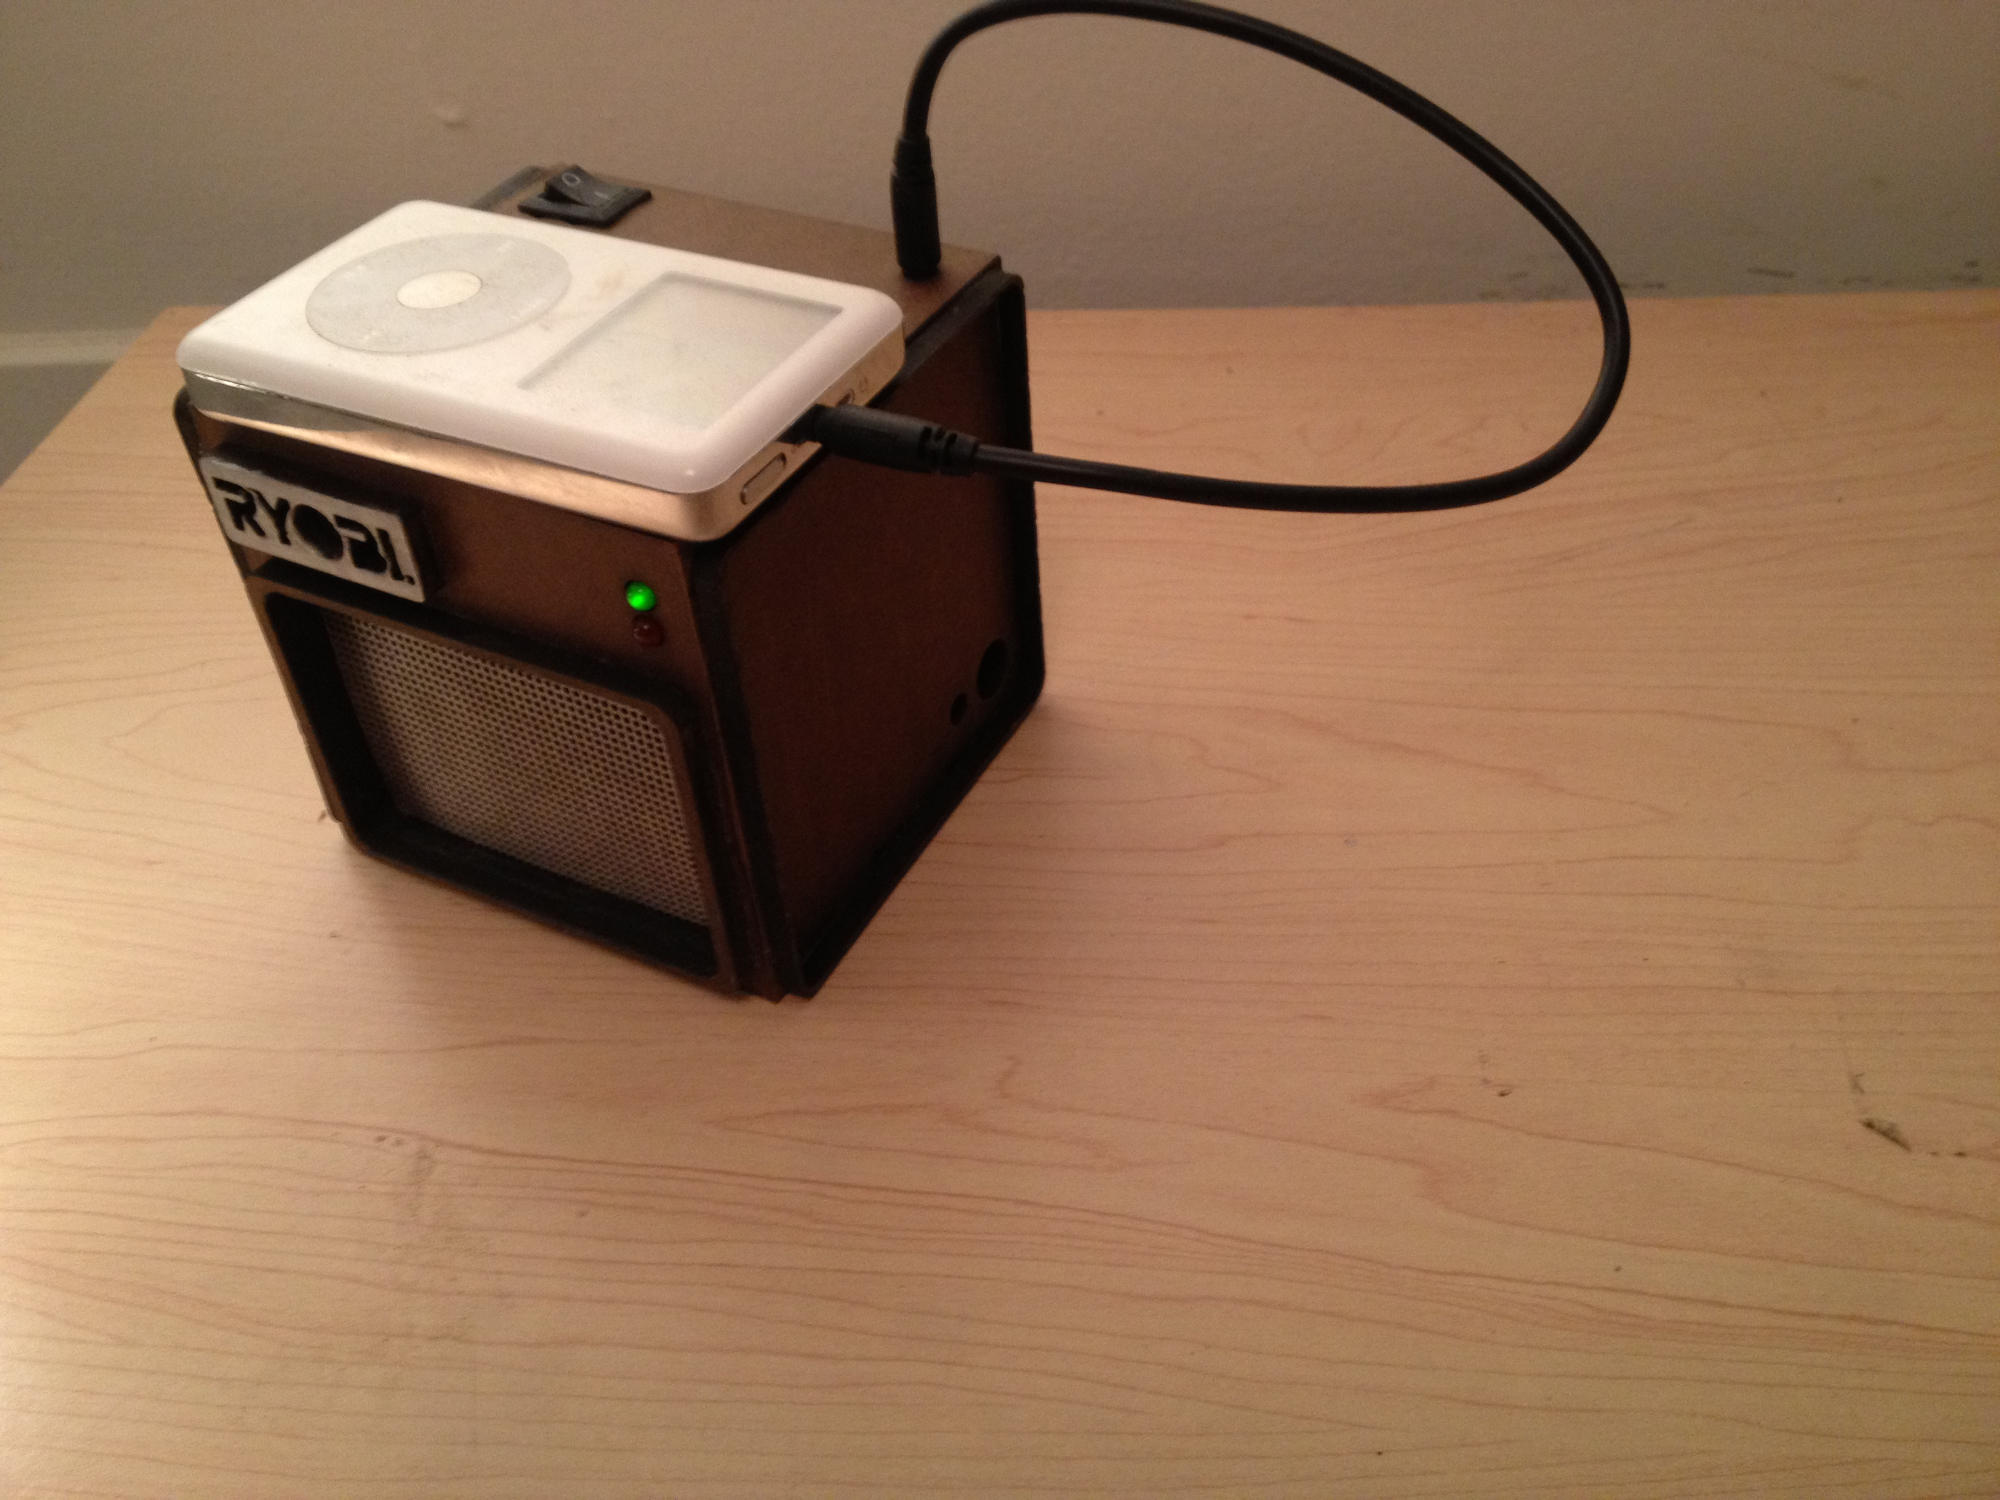 Cube with iPod